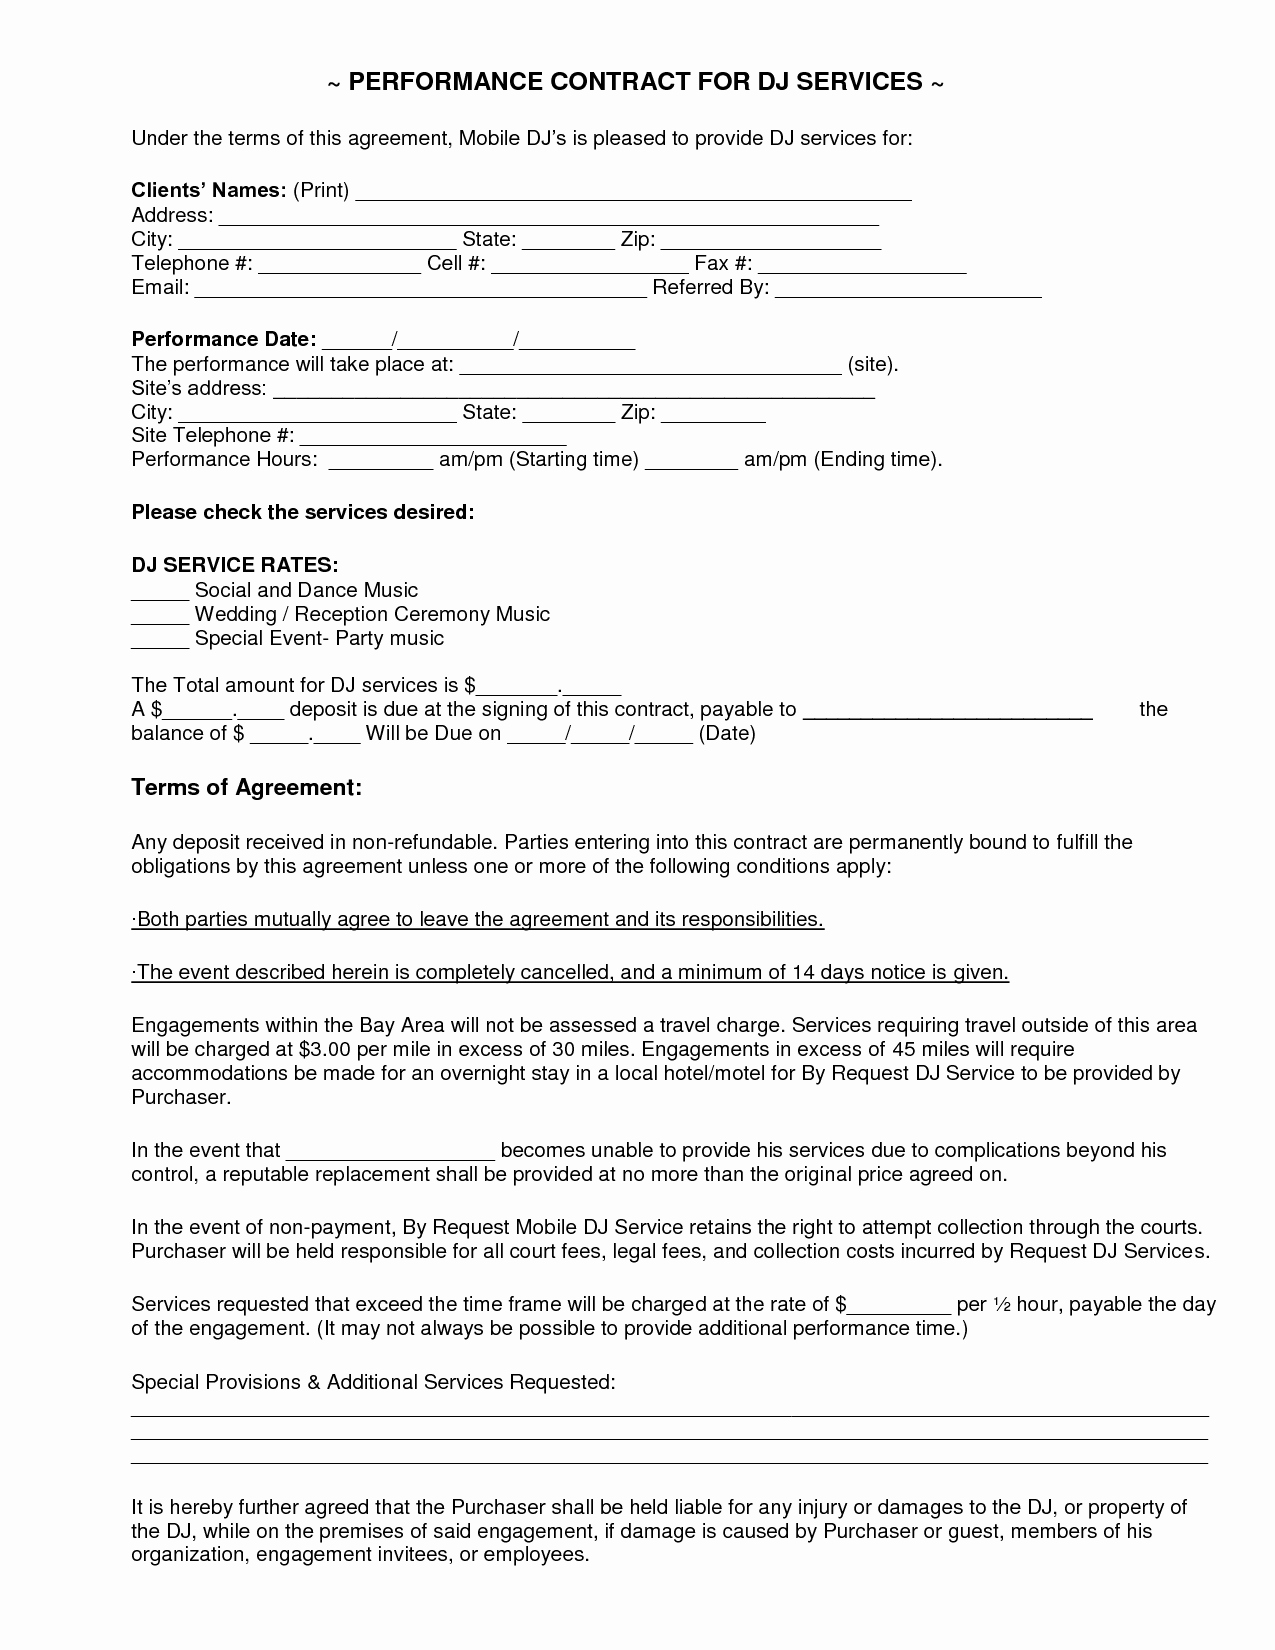 Free Dj Contract Template Unique Mobile Dj Contract